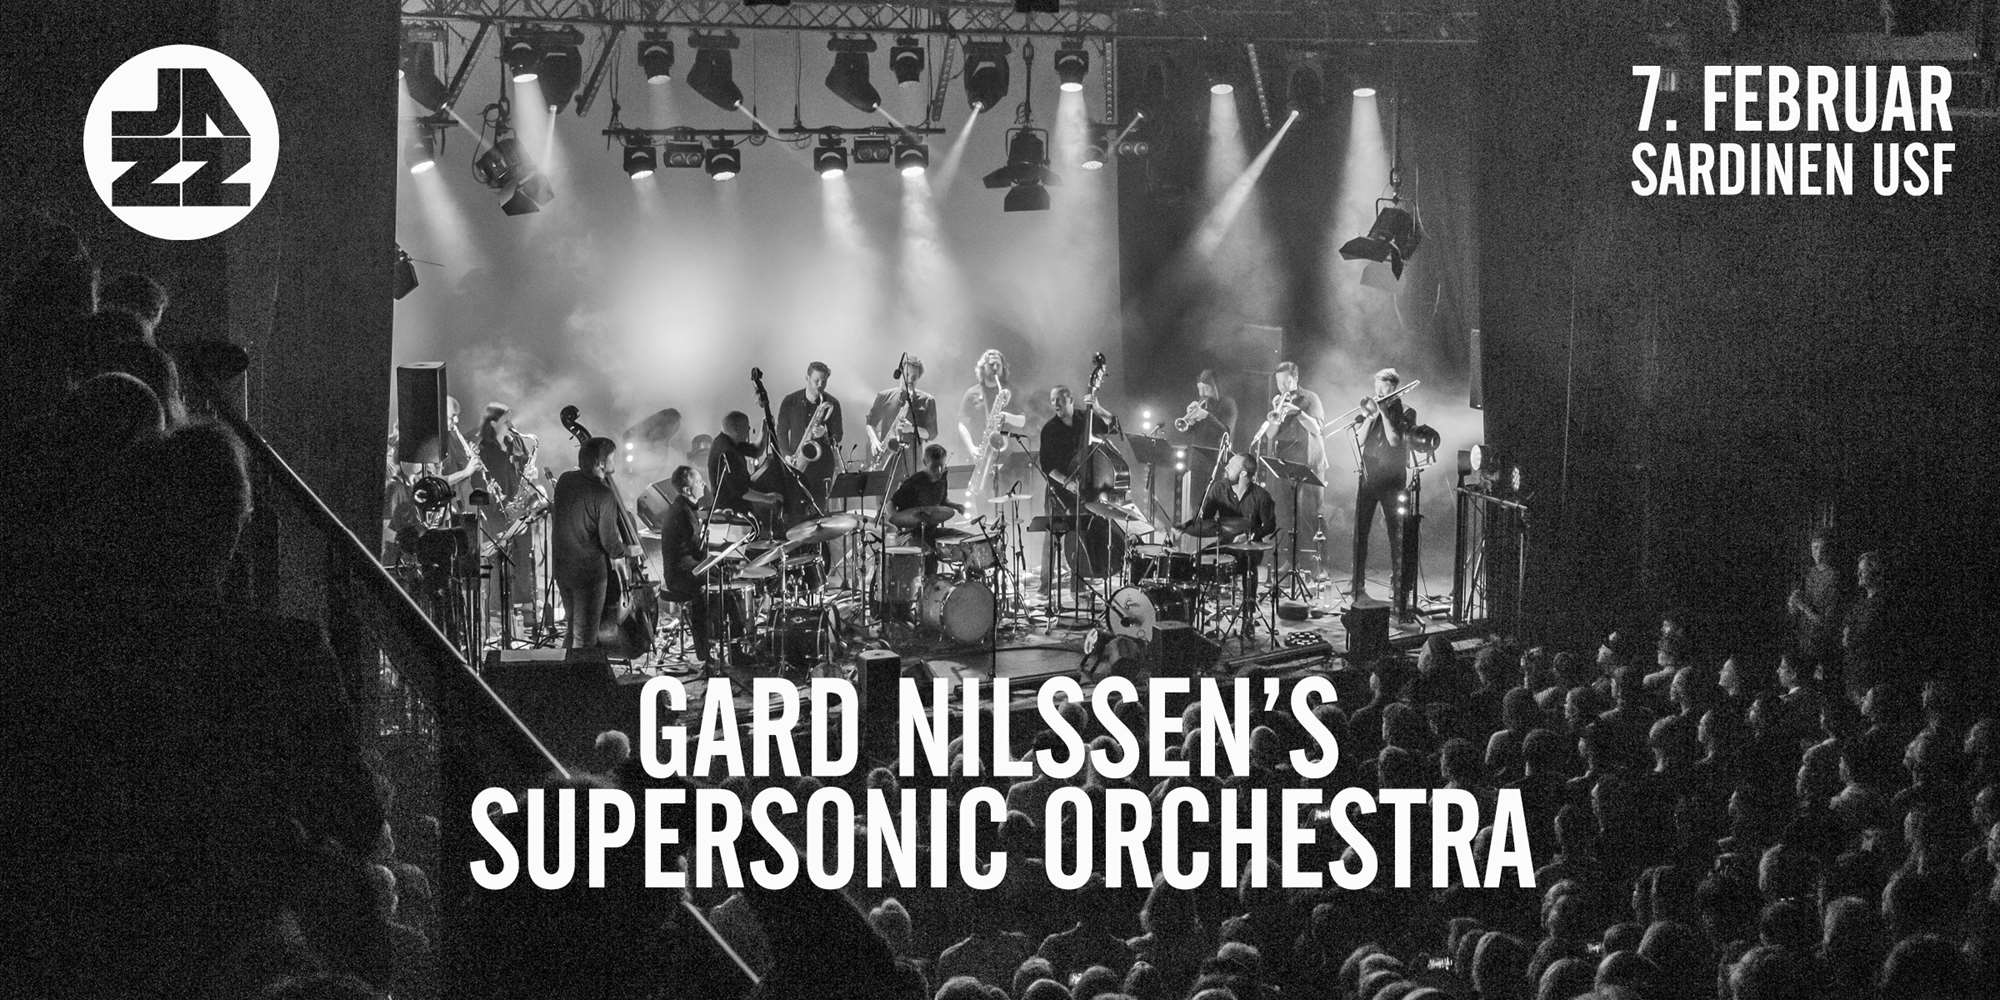 supersonic_orchestra_FB